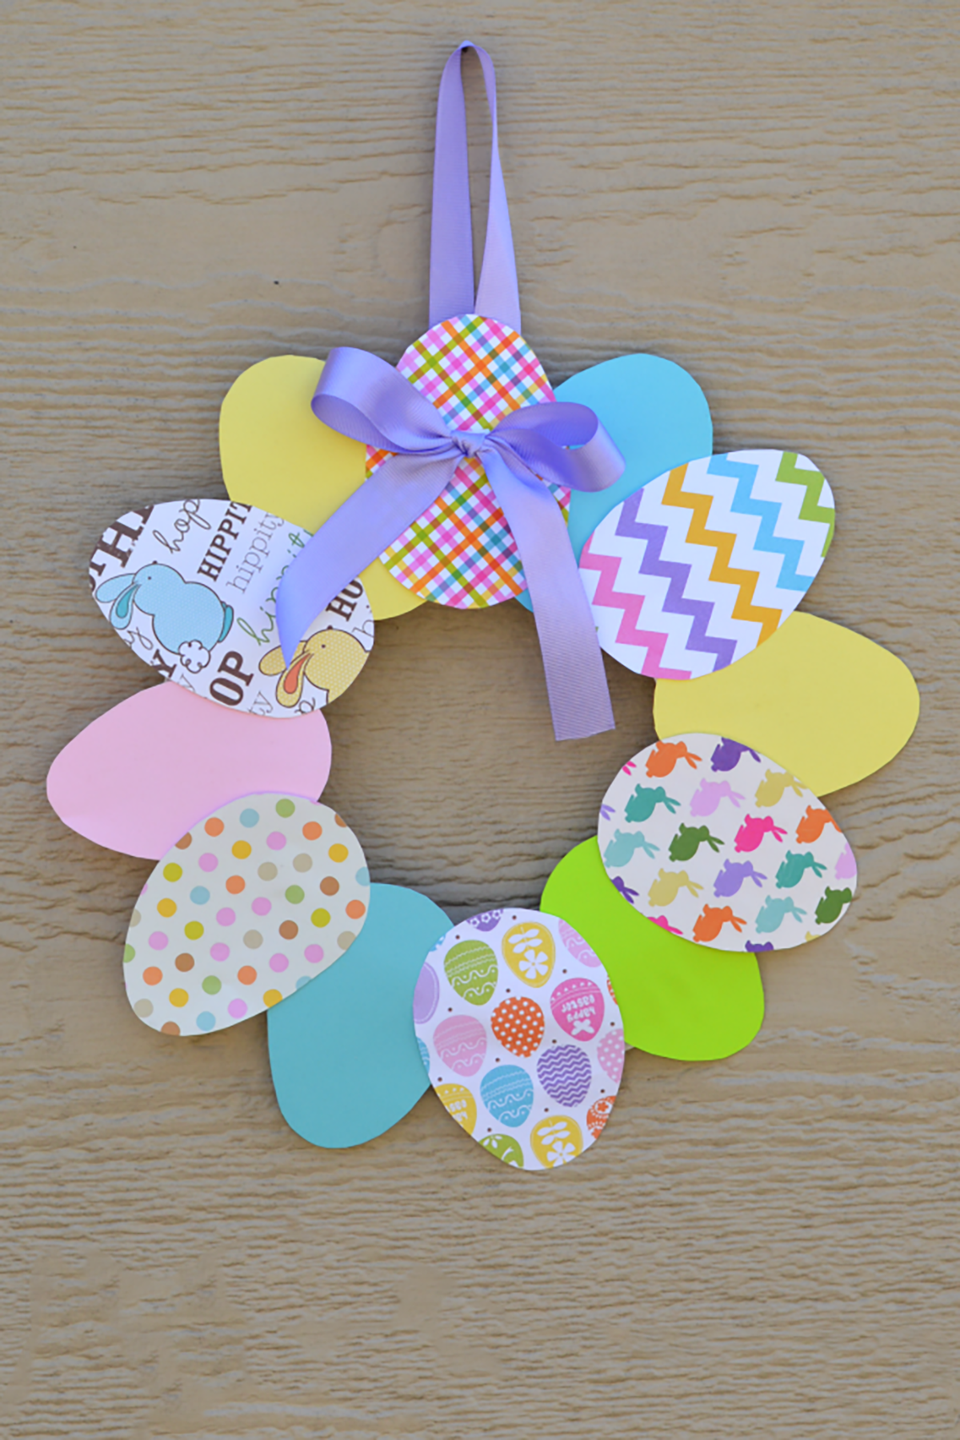 """<p>Supplies for this wreath will cost you less than $5, and you'll love how the spring colors brighten your home.</p><p><strong>Get the tutorial at <a href=""""http://www.theresourcefulmama.com/easy-paper-easter-wreath/"""" rel=""""nofollow noopener"""" target=""""_blank"""" data-ylk=""""slk:The Resourceful Mama"""" class=""""link rapid-noclick-resp"""">The Resourceful Mama</a>.</strong></p>"""